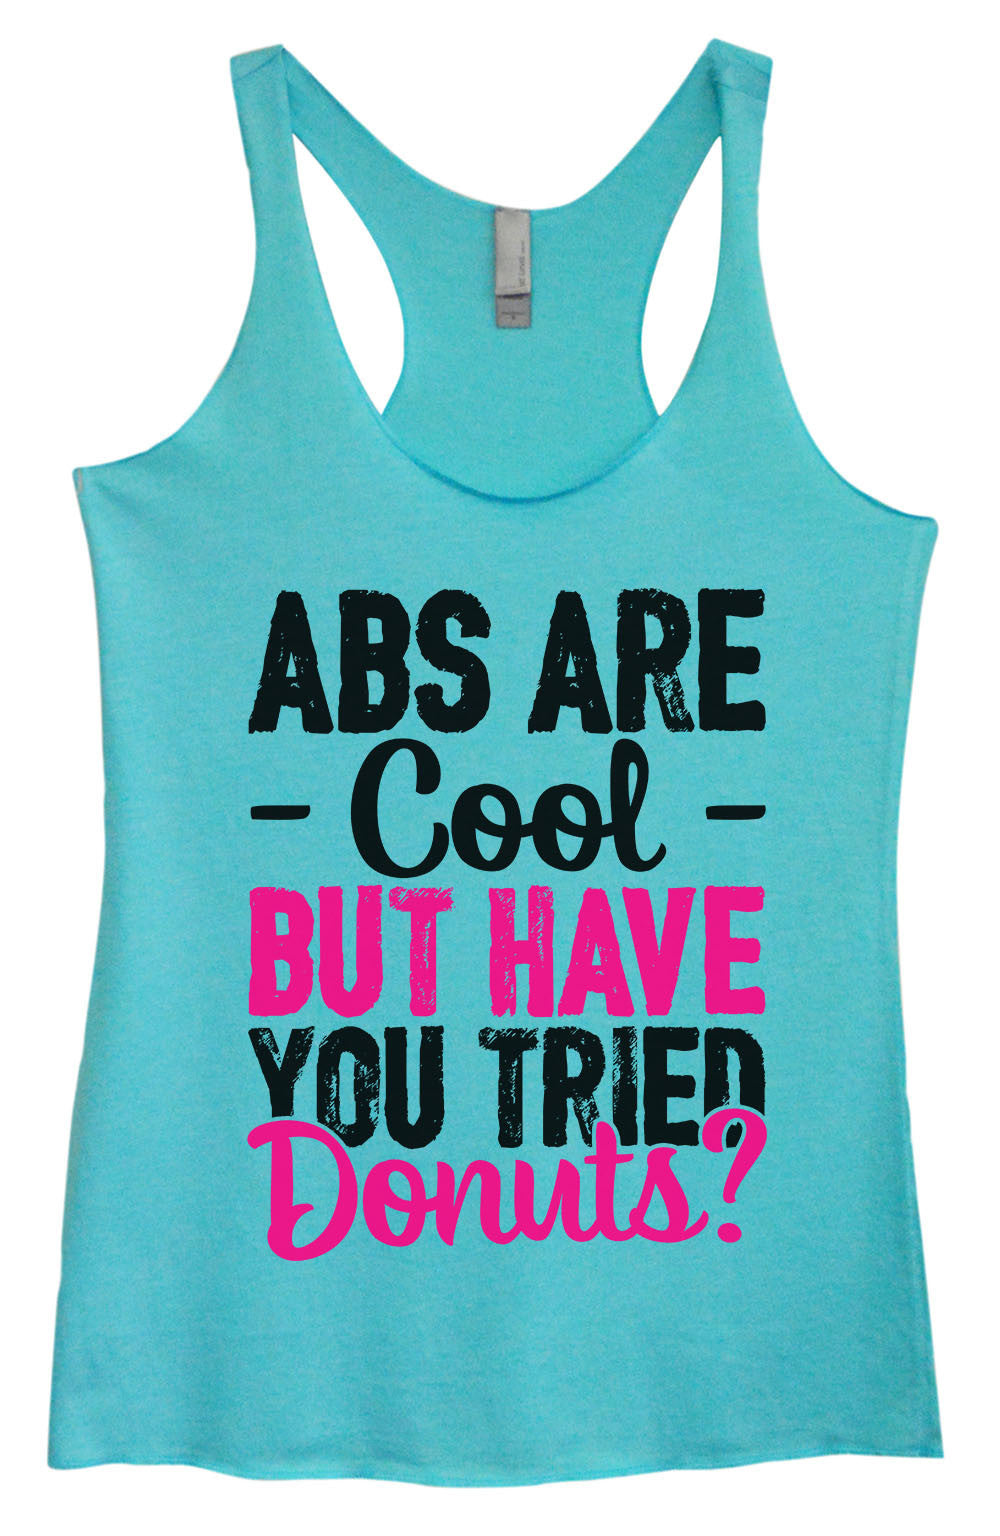 Womens Fashion Triblend Tank Top - ABS Are - Cool - But Have You Tried Donuts? - Tri-1401 - Funny Shirts Tank Tops Burnouts and Triblends  - 3